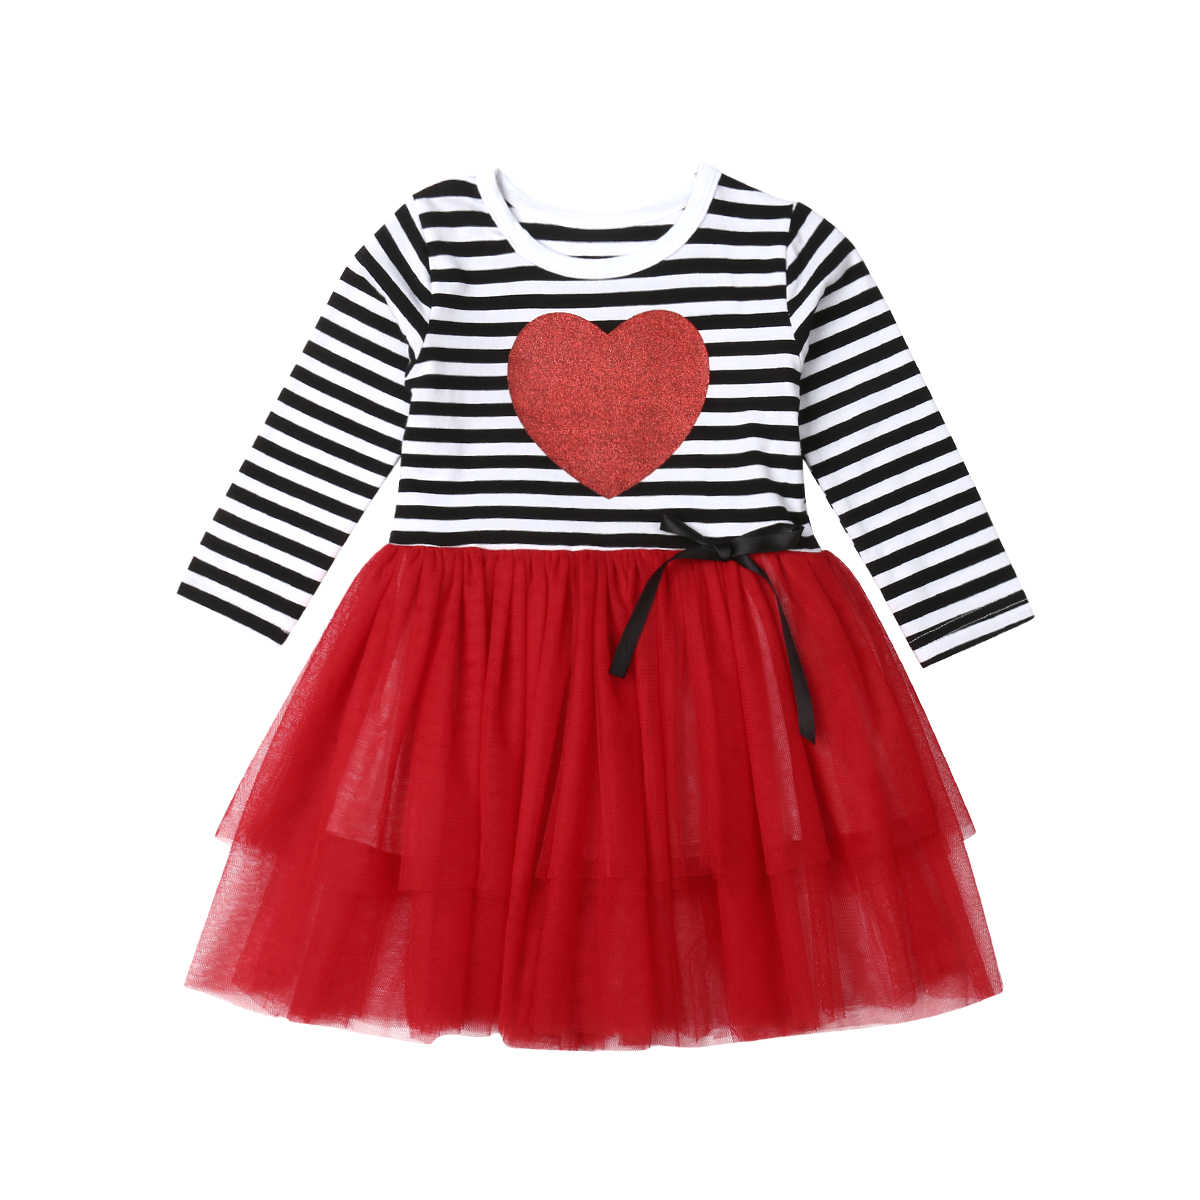 3eb5d2476 2019 Spring Valentines Day Gift Baby Girl Tulle Dress Kids Heart Striped  Patchwork Autumn Party Wedding